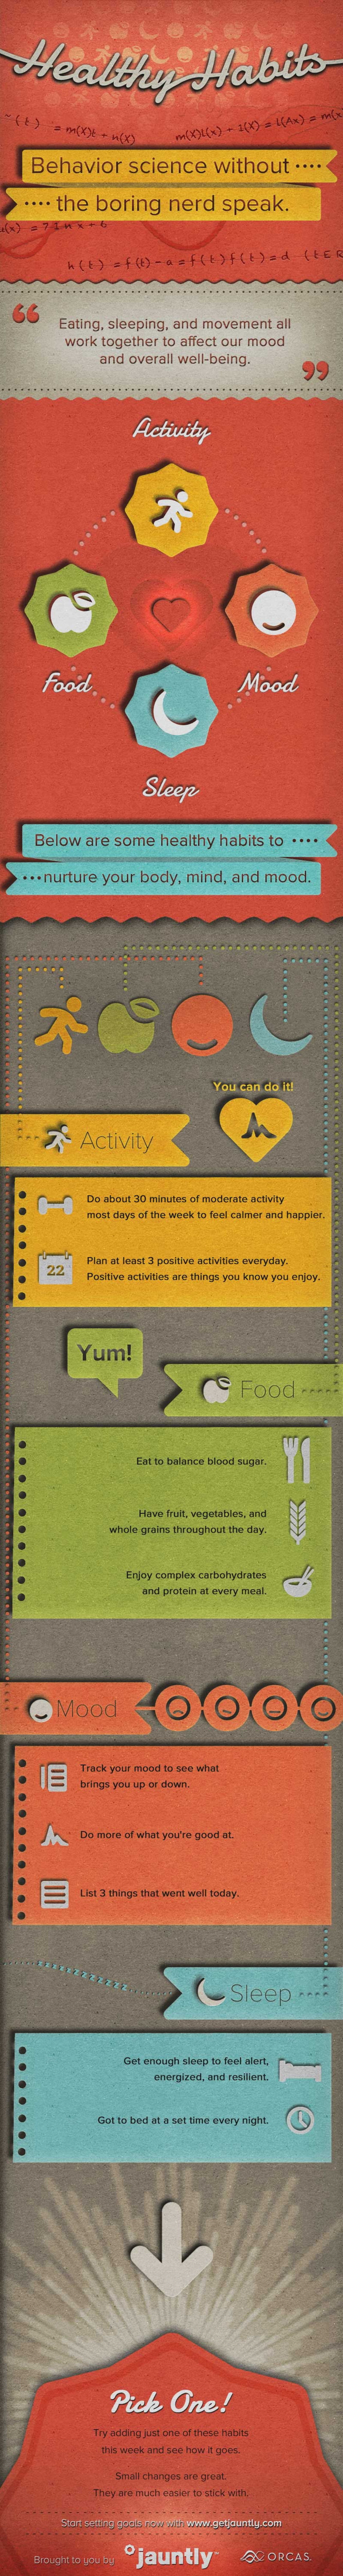 Healthy Habits - Jauntly Infographic